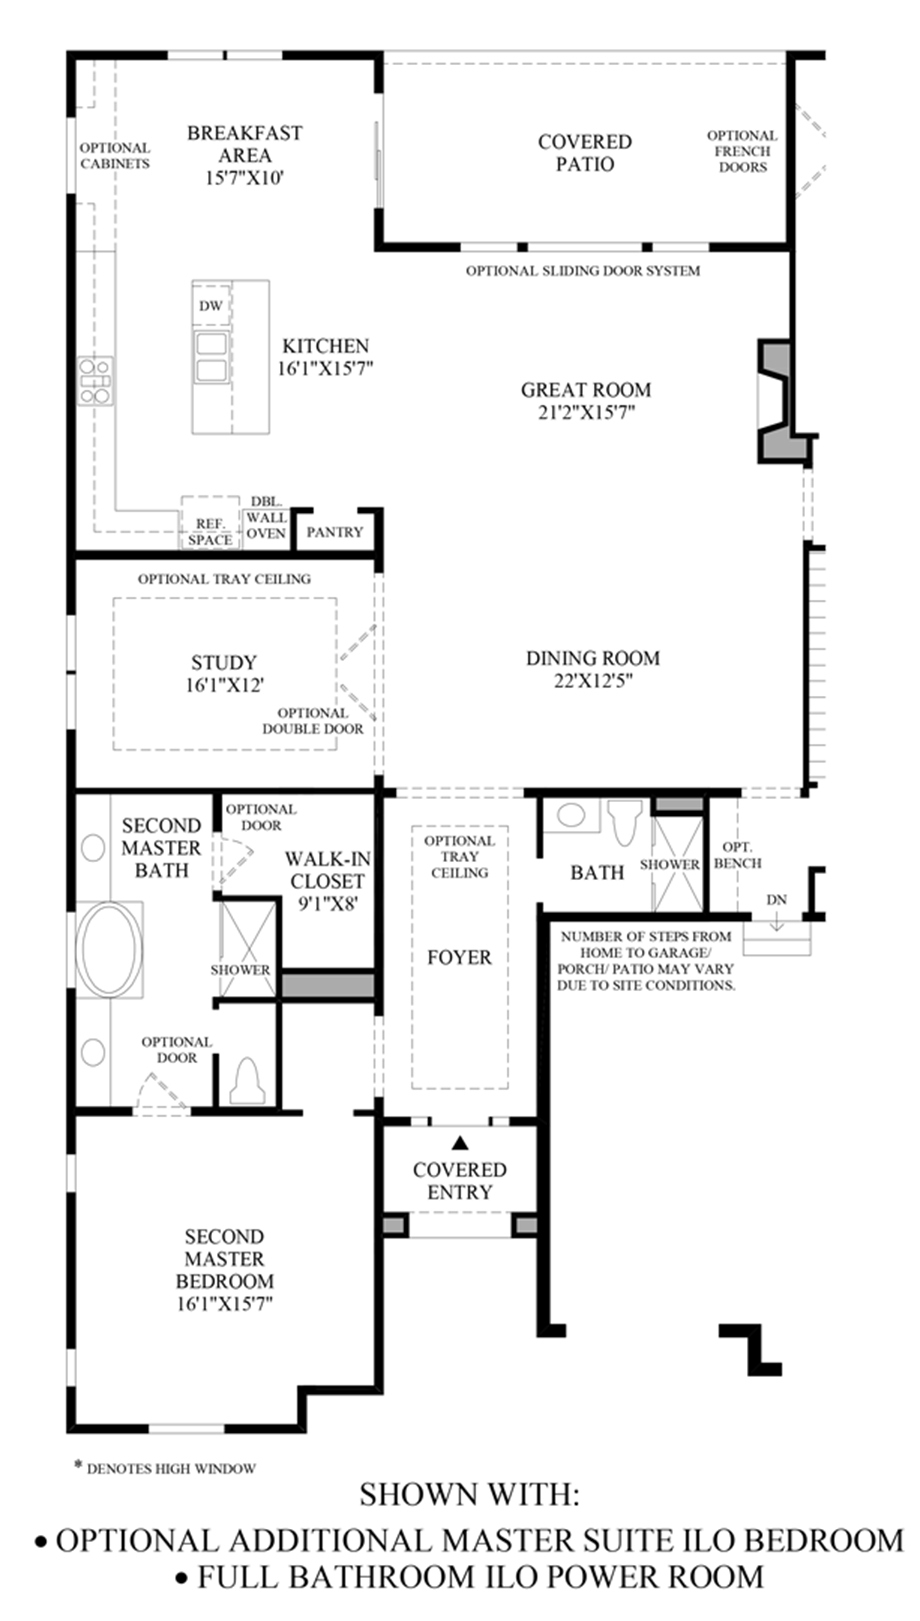 Optional Additional Master Suite ILO Bedroom & Full Bath ILO Powder Room Floor Plan